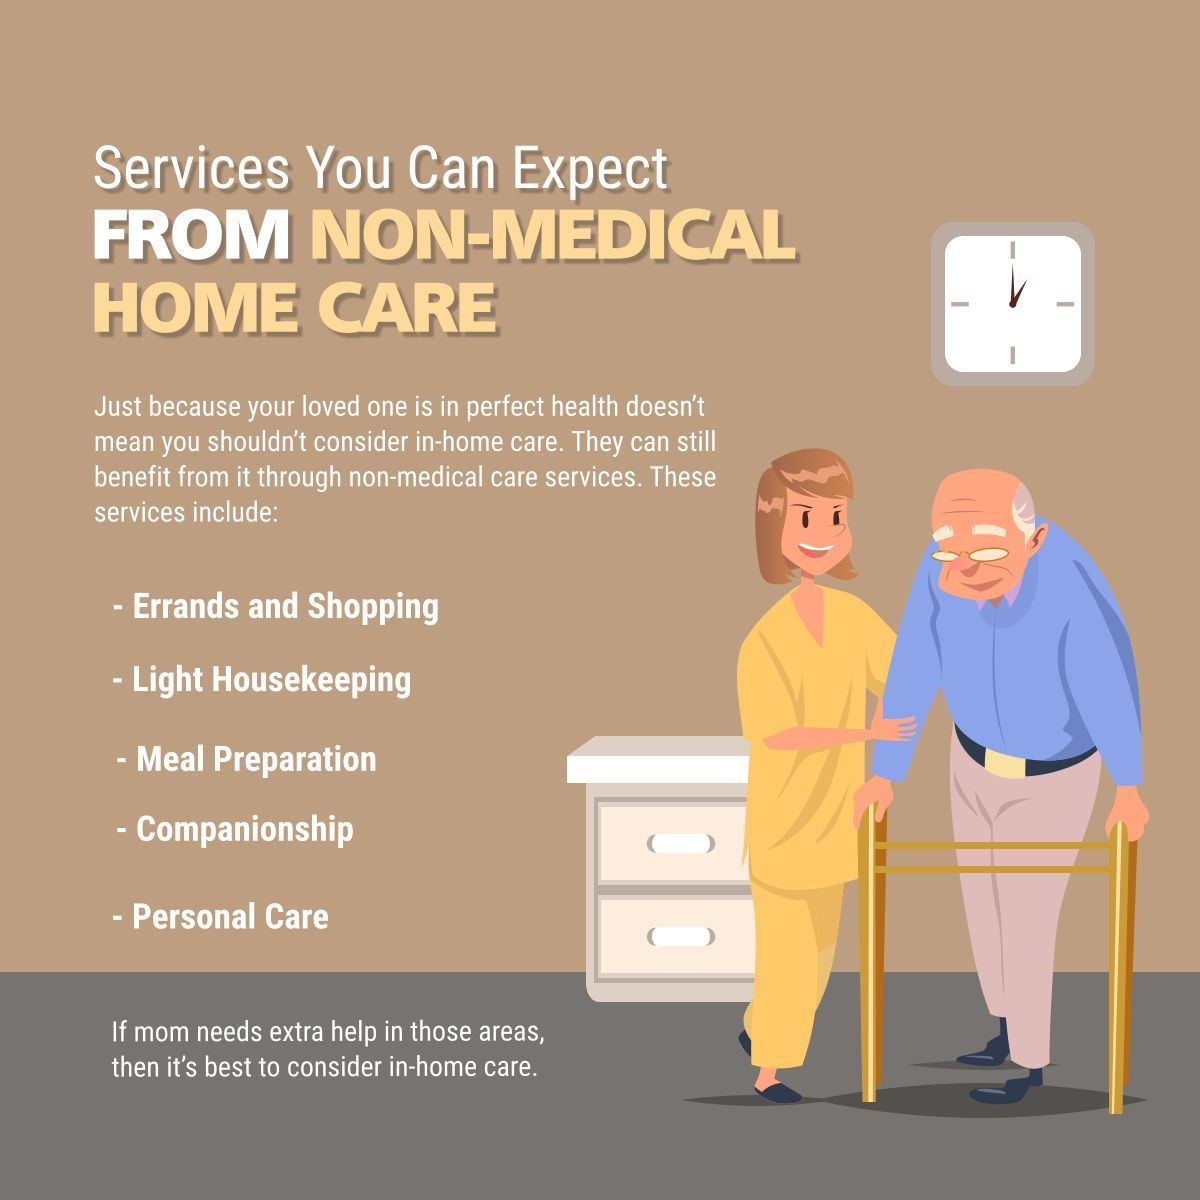 Services You Can Expect from NonMedical Home Care